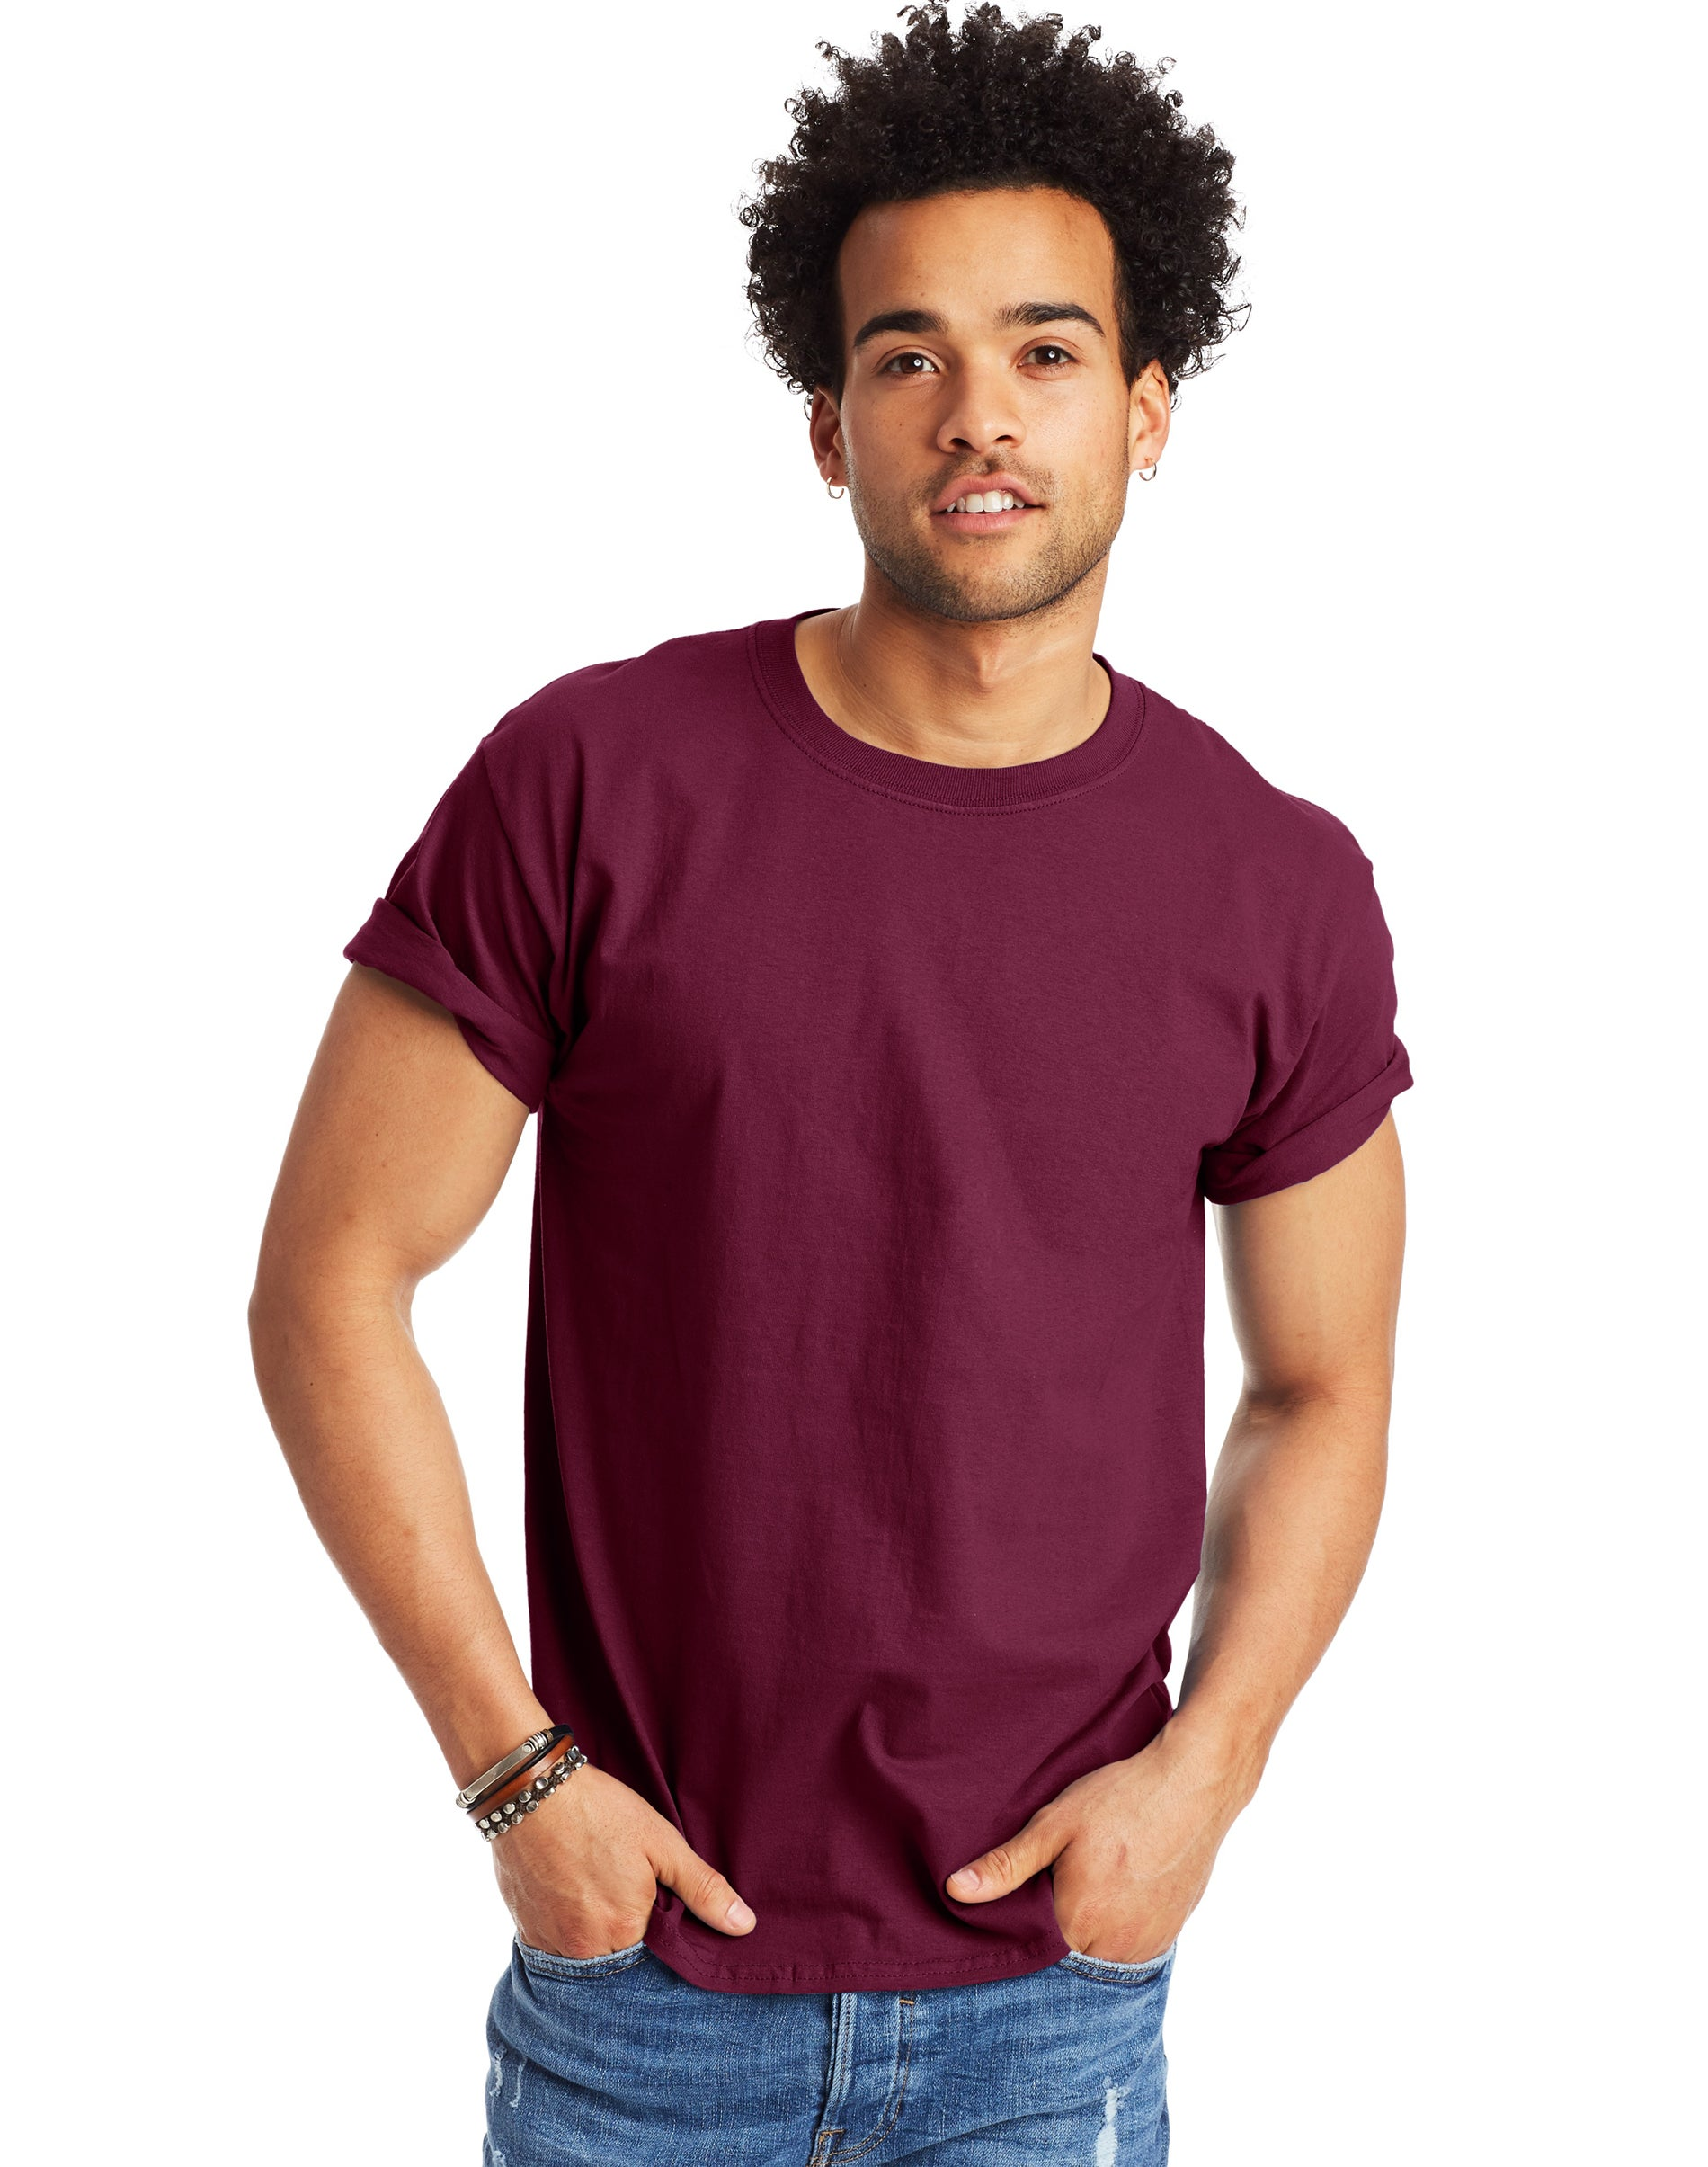 Maroon X-Large Hanes Mens Tagless Long Sleeve T-Shirt with a Pocket